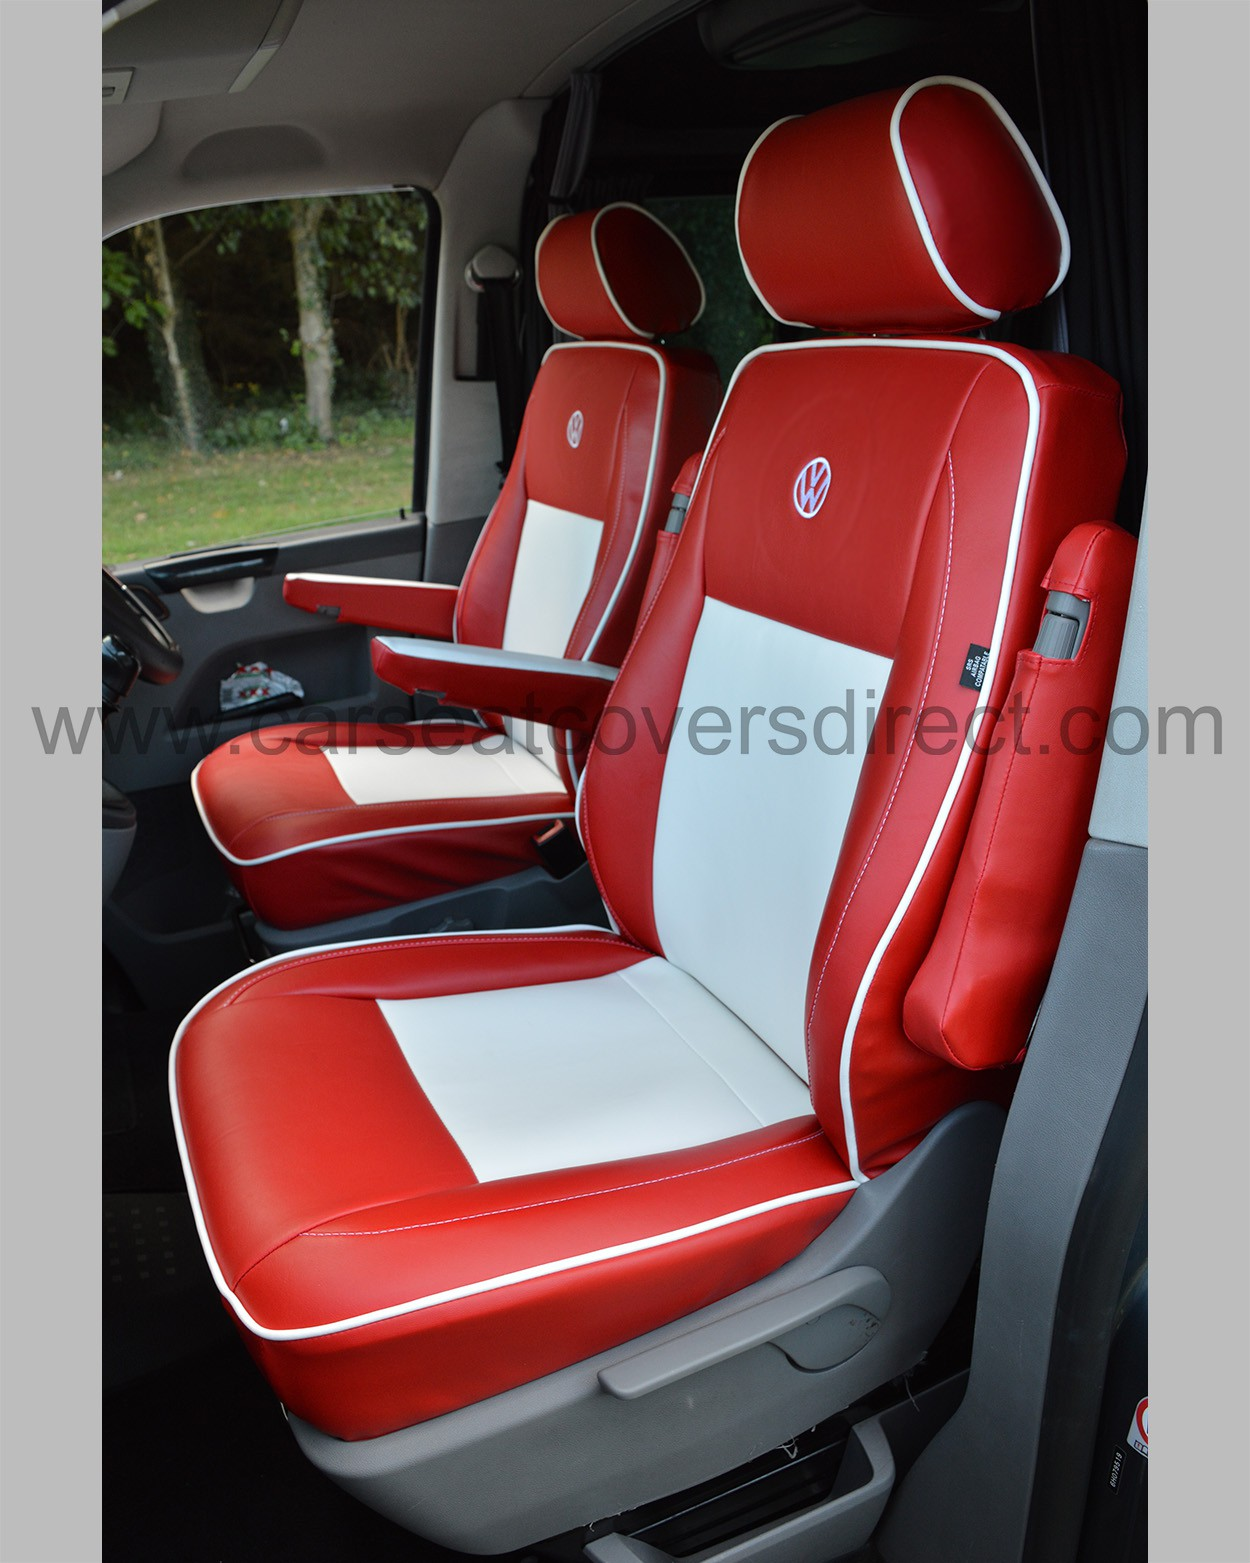 vw  seat covers red white leatherette car seat covers direct tailored   choice